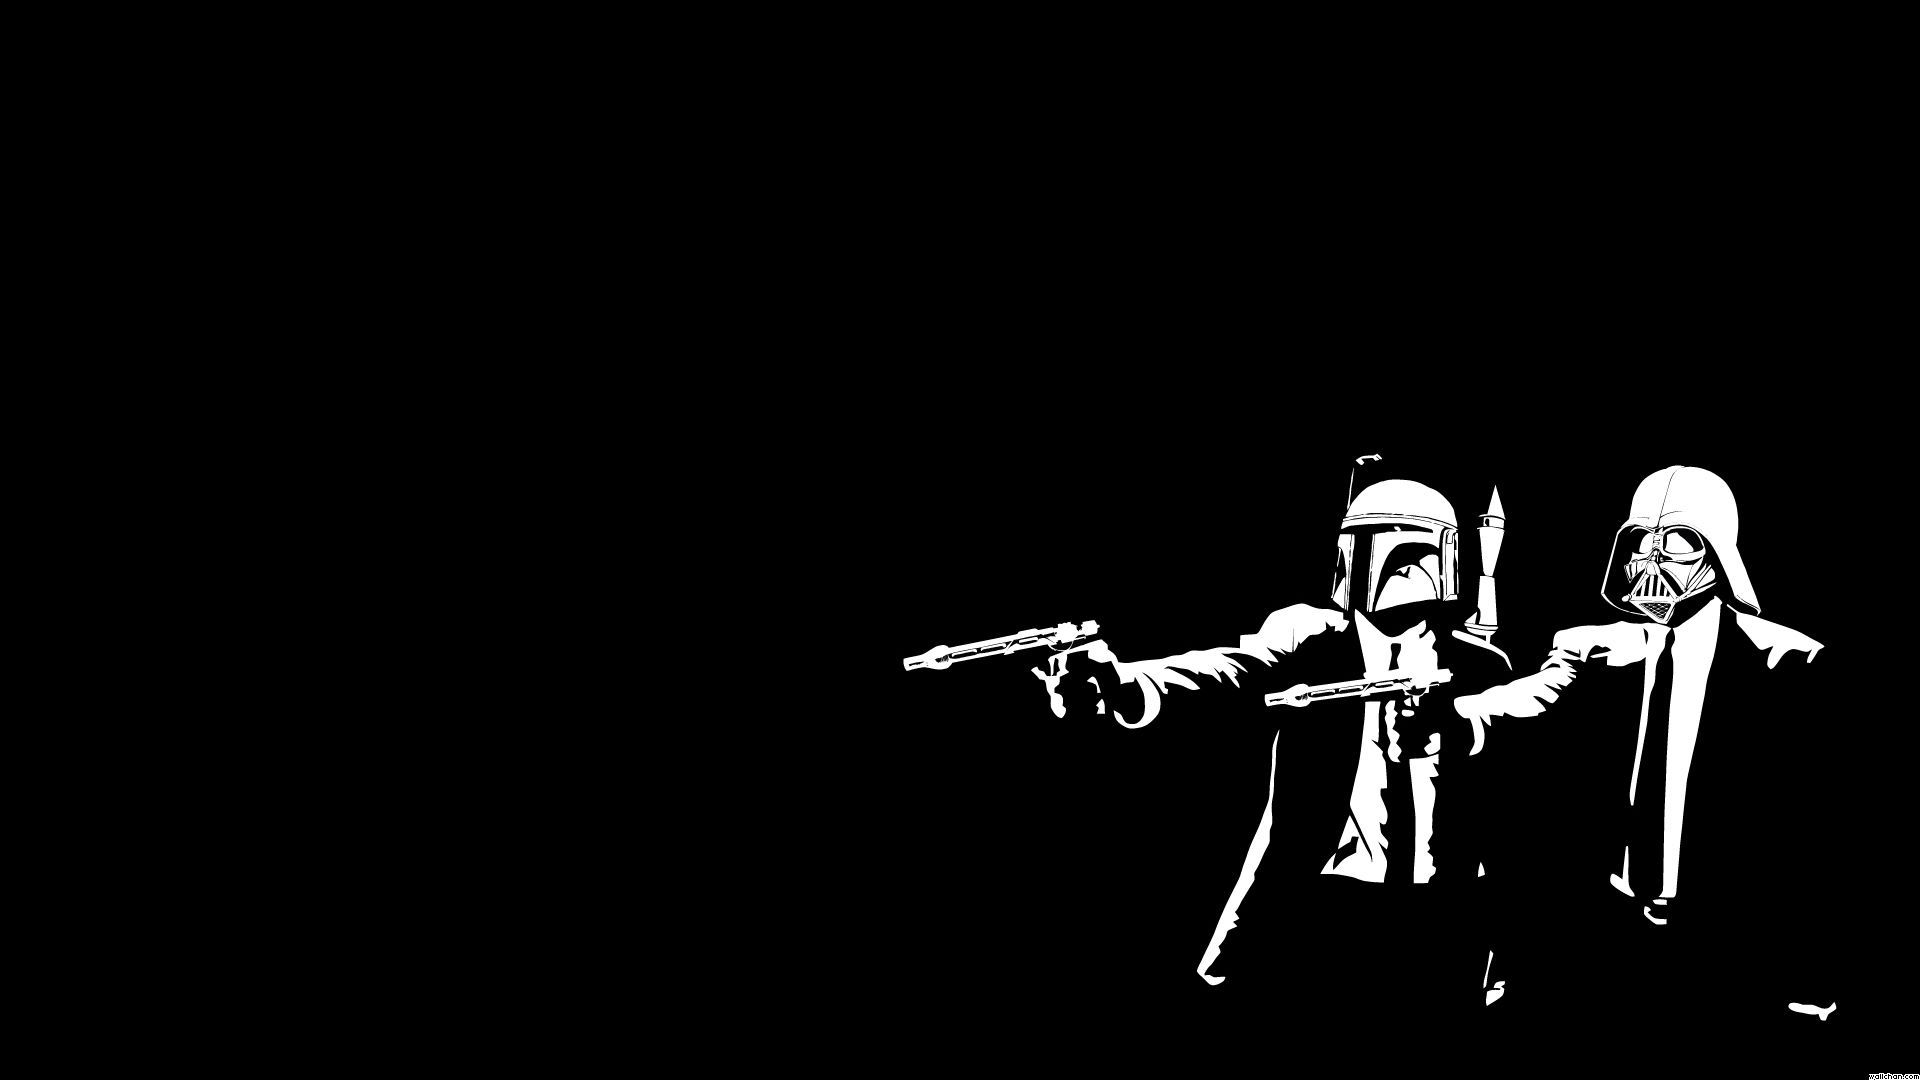 Star Wars Black Wallpapers Top Free Star Wars Black Backgrounds